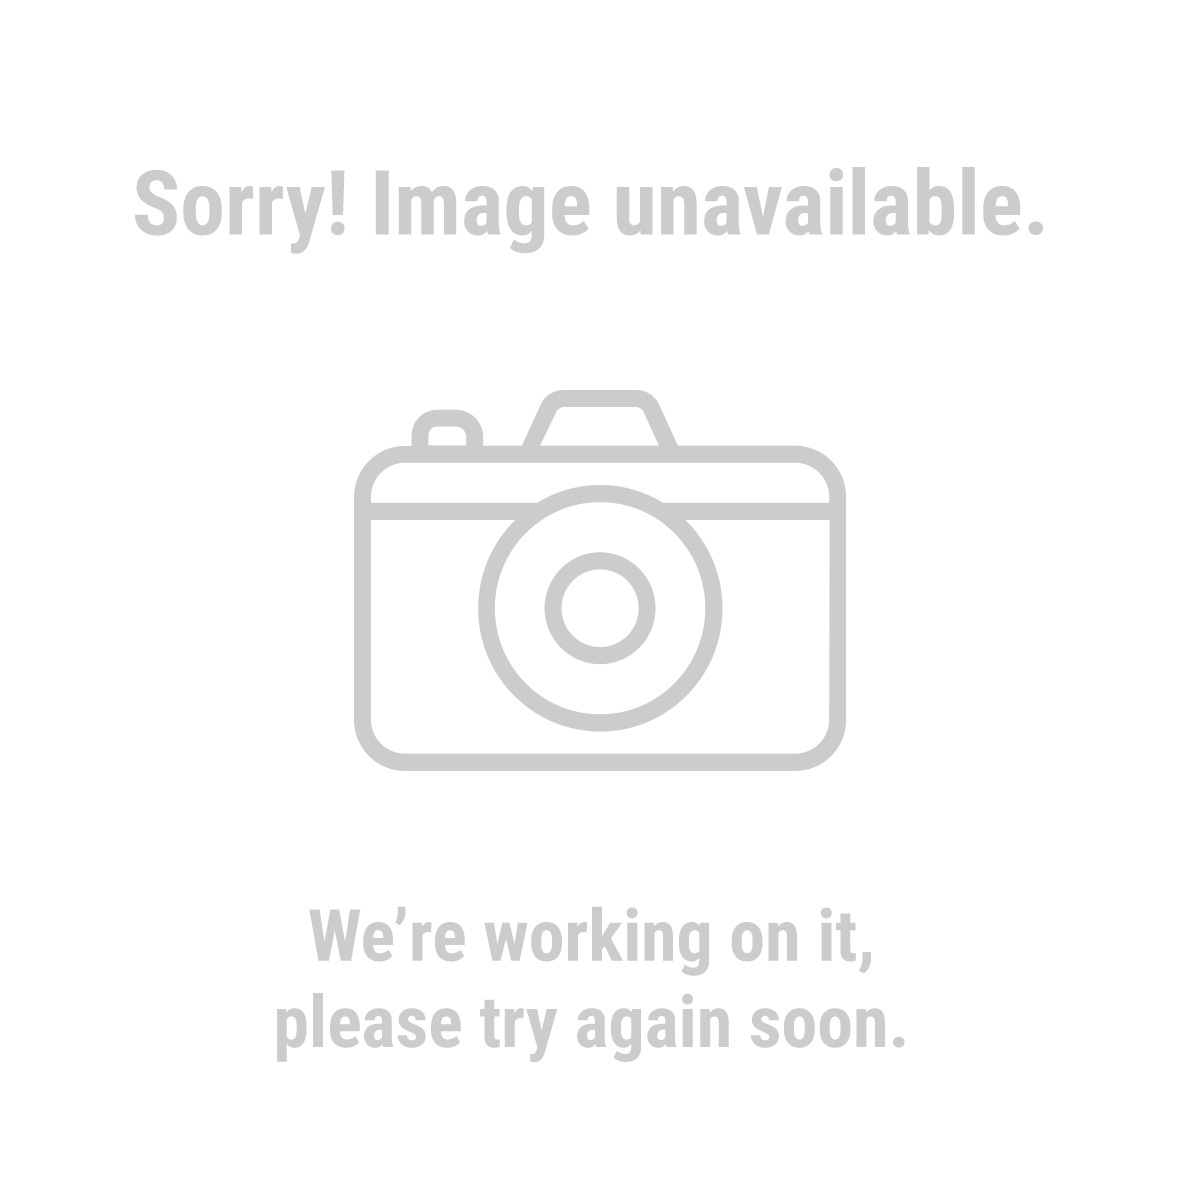 Storehouse 67684 305 Piece Solderless Terminal Kit